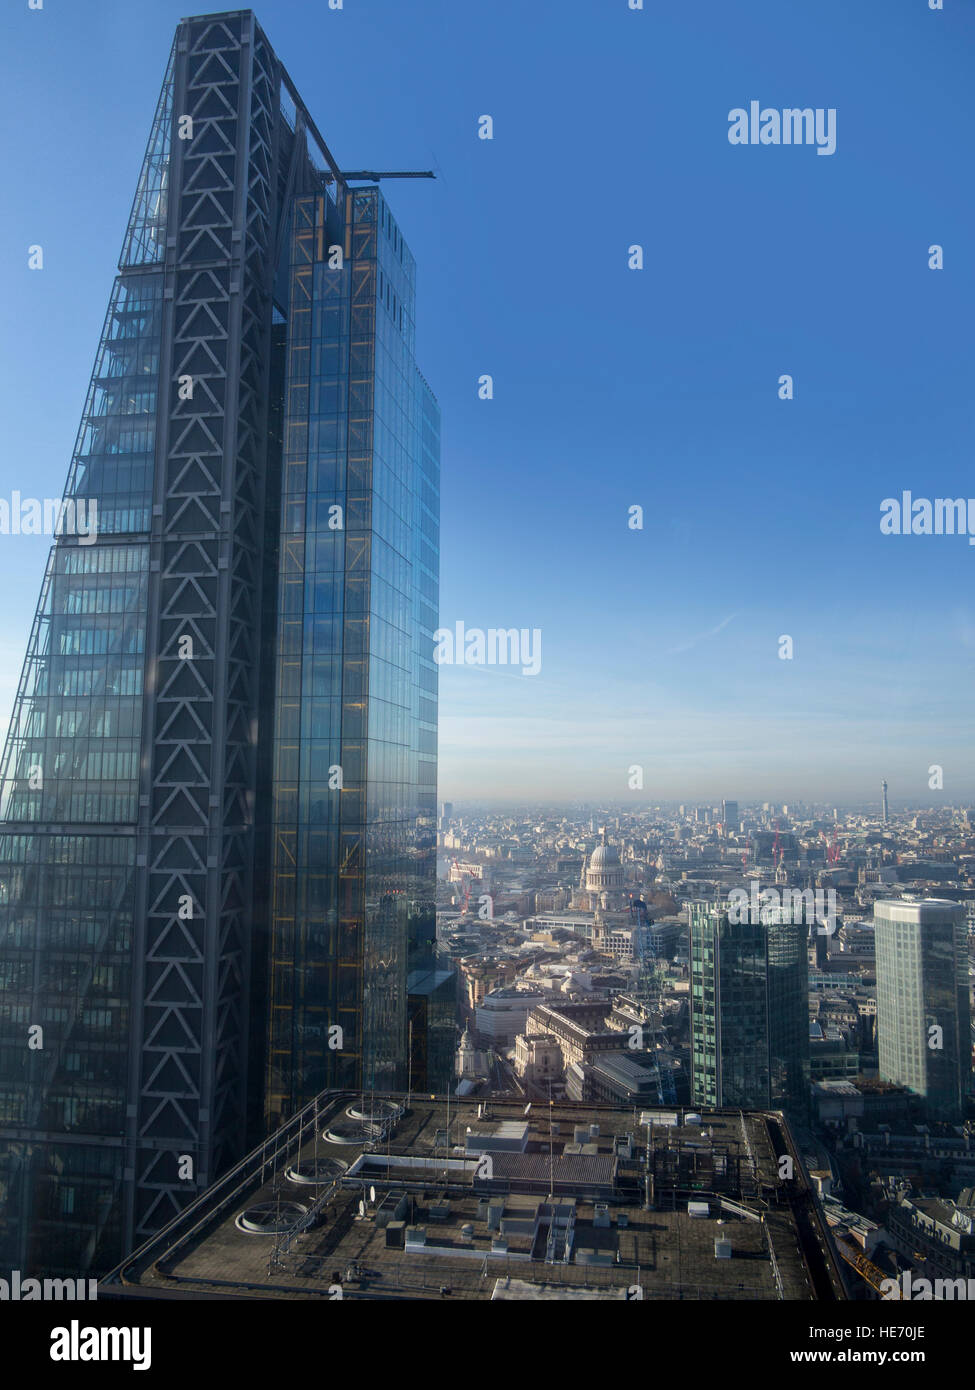 122 Leadenhall Street (The Cheesegrater) in London's financial district - Stock Image